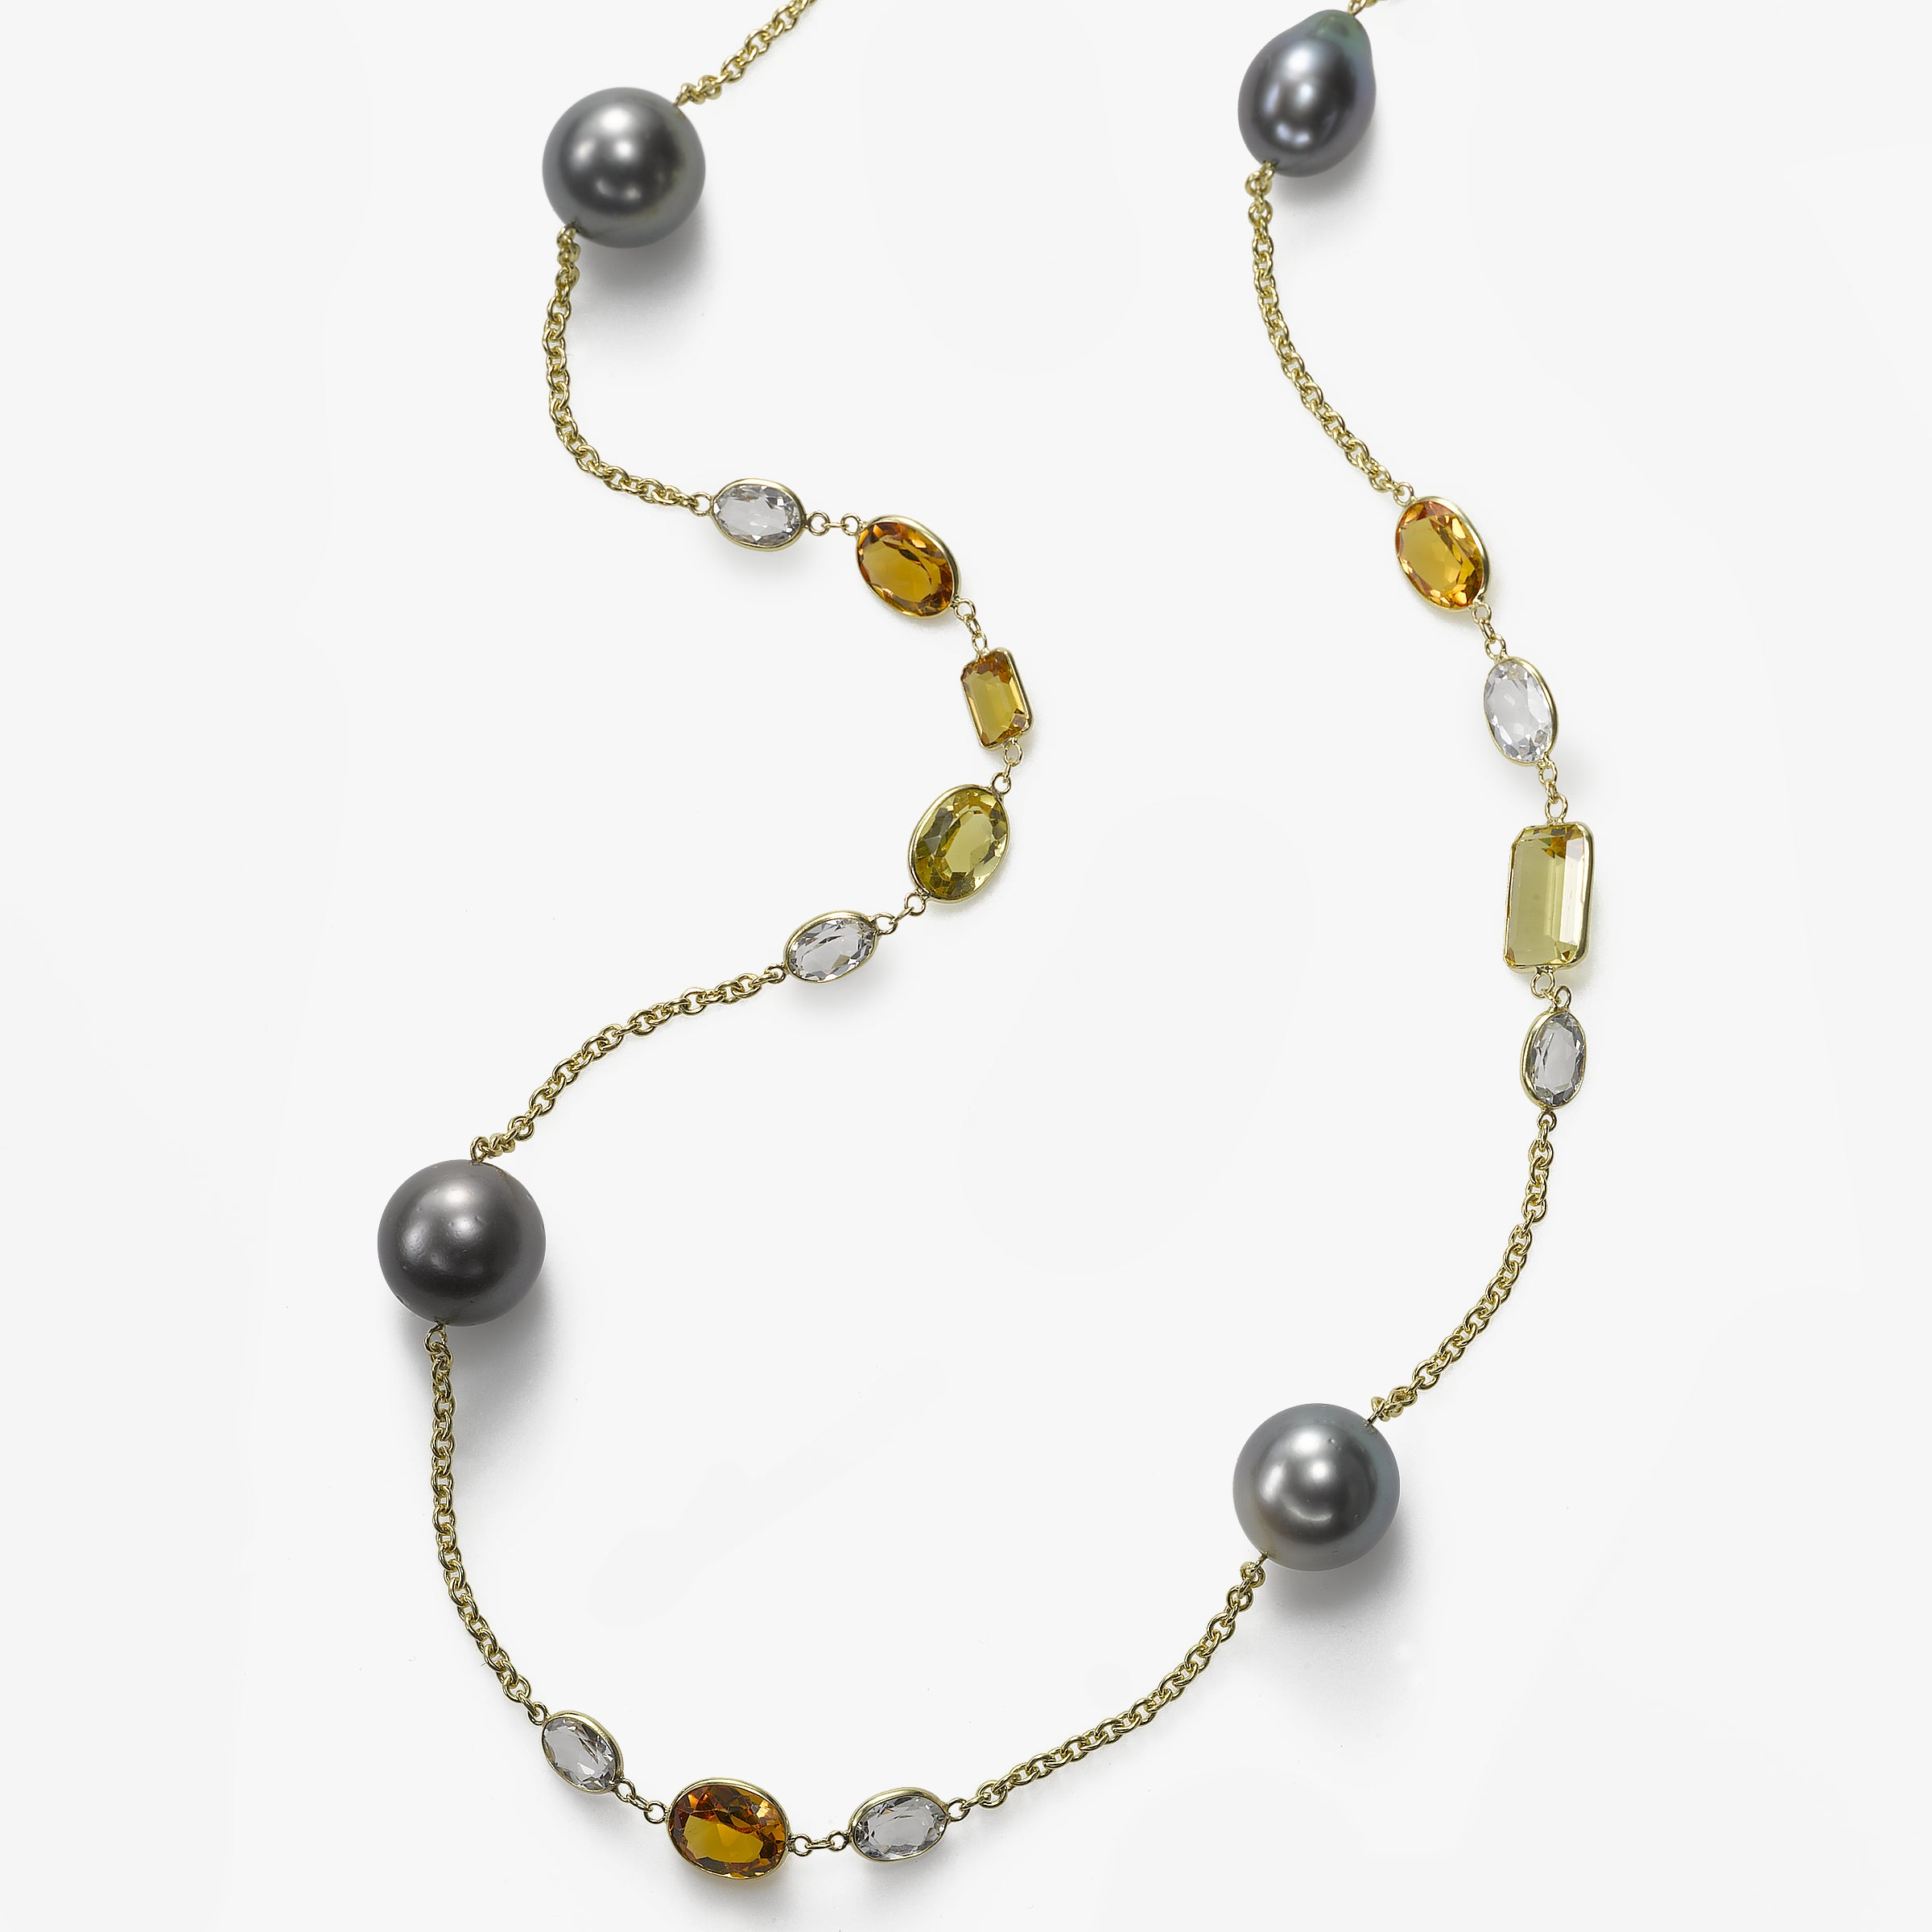 Tahitian Cultured Pearl, Yellow Tourmaline and Multistone Necklace, 18KY, 35 Inch